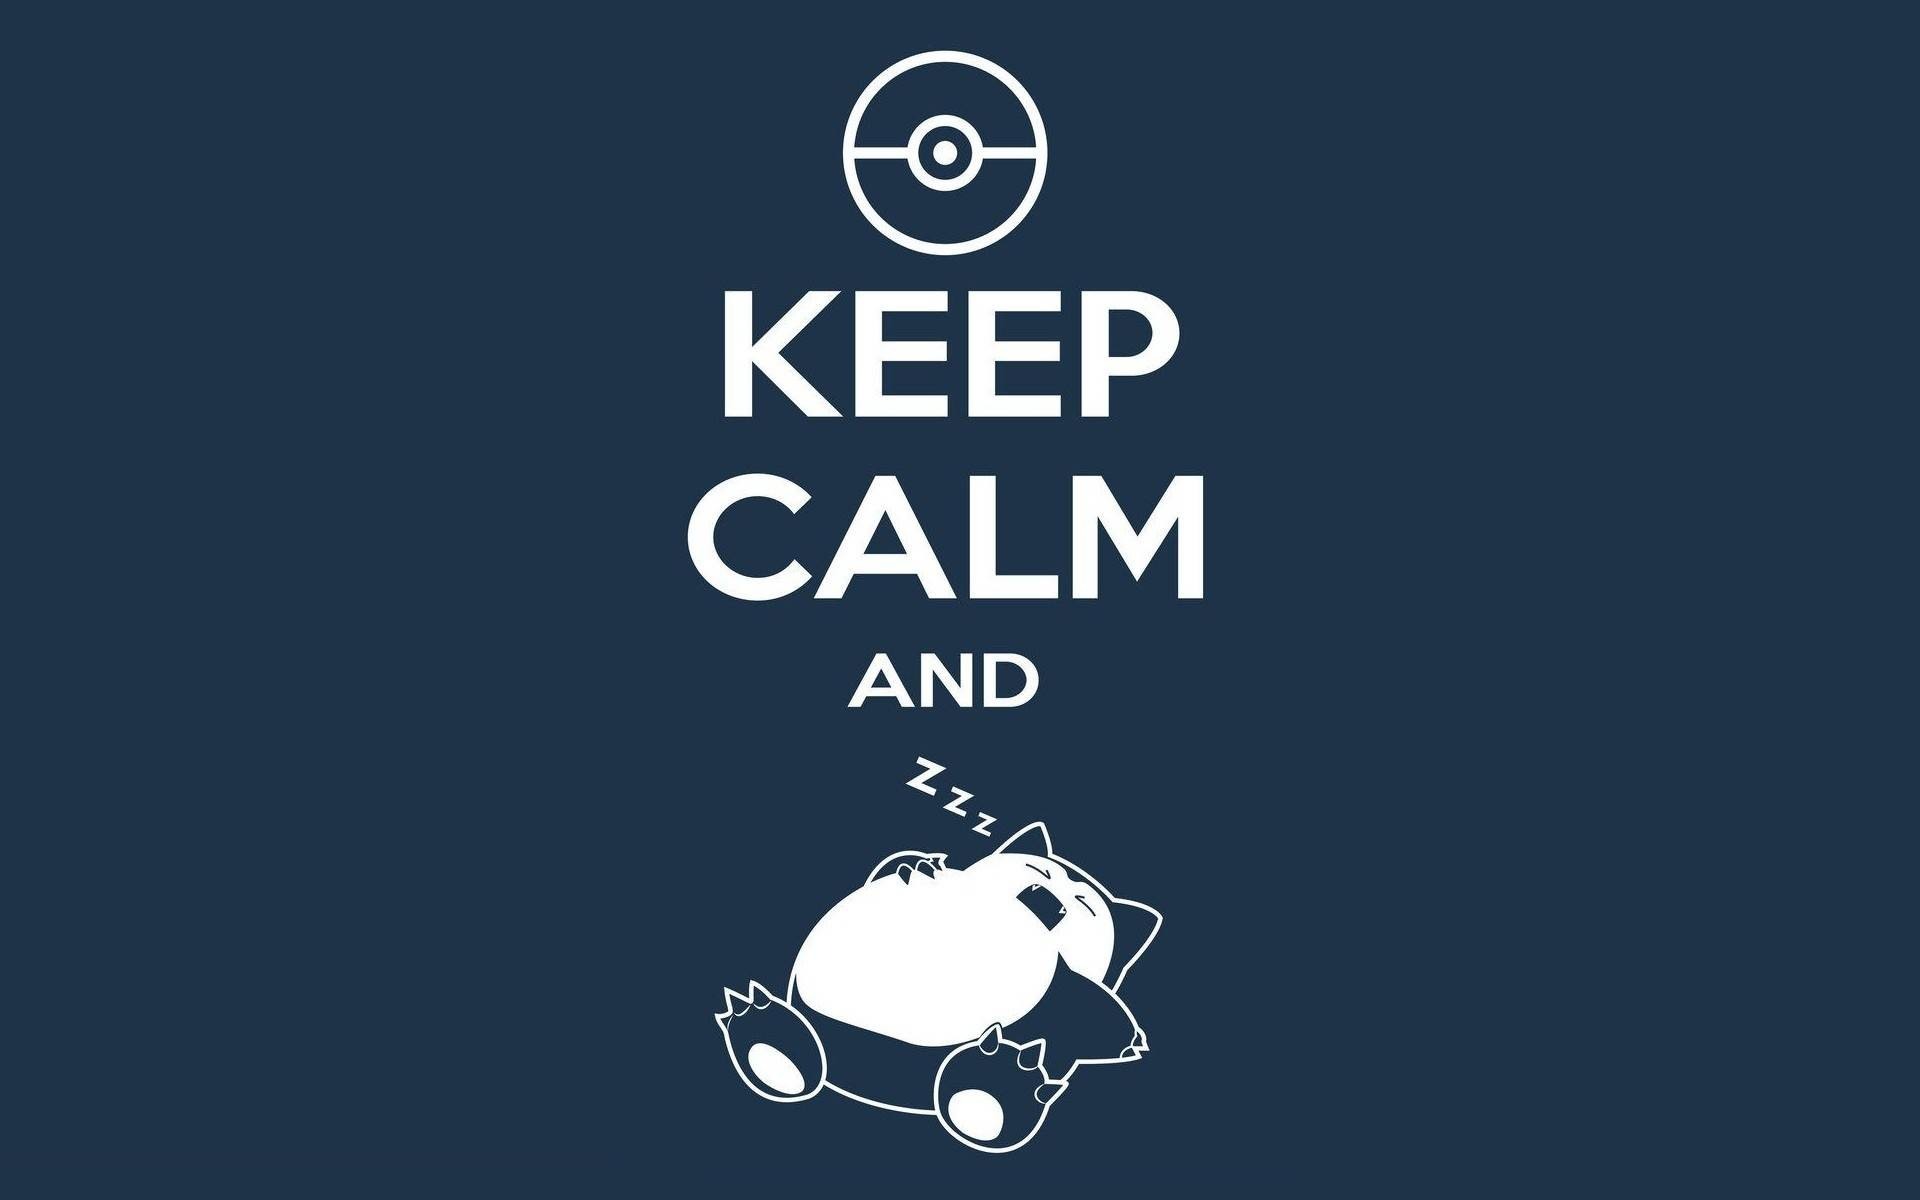 Funny Pokemon Wallpapers 69 images